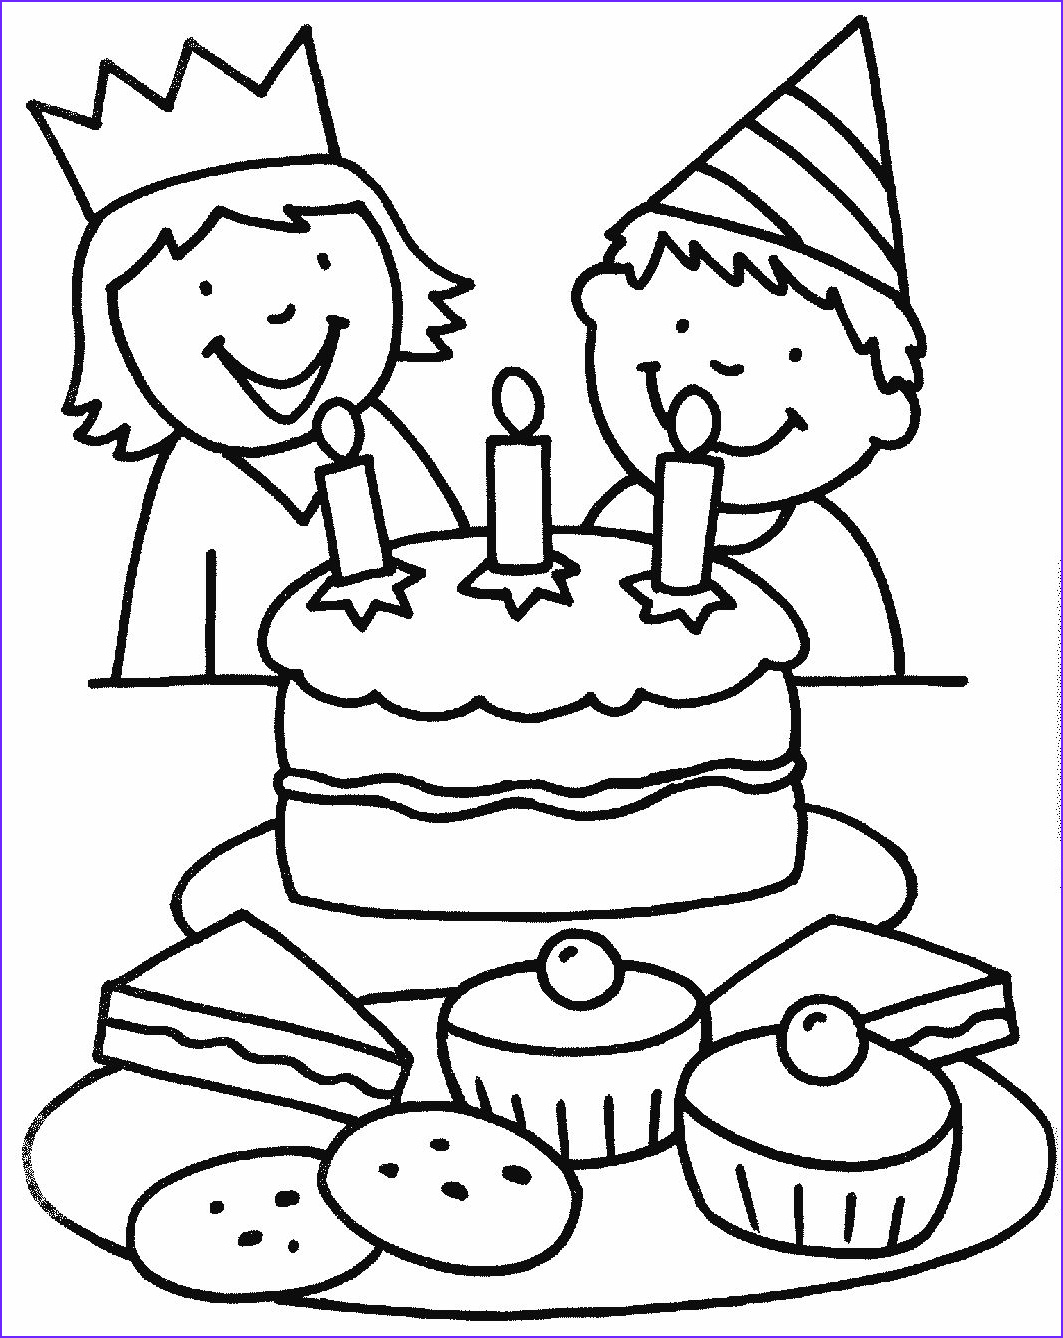 Sweets Coloring Pages New Photography Sweets Coloring Pages for Childrens Printable for Free